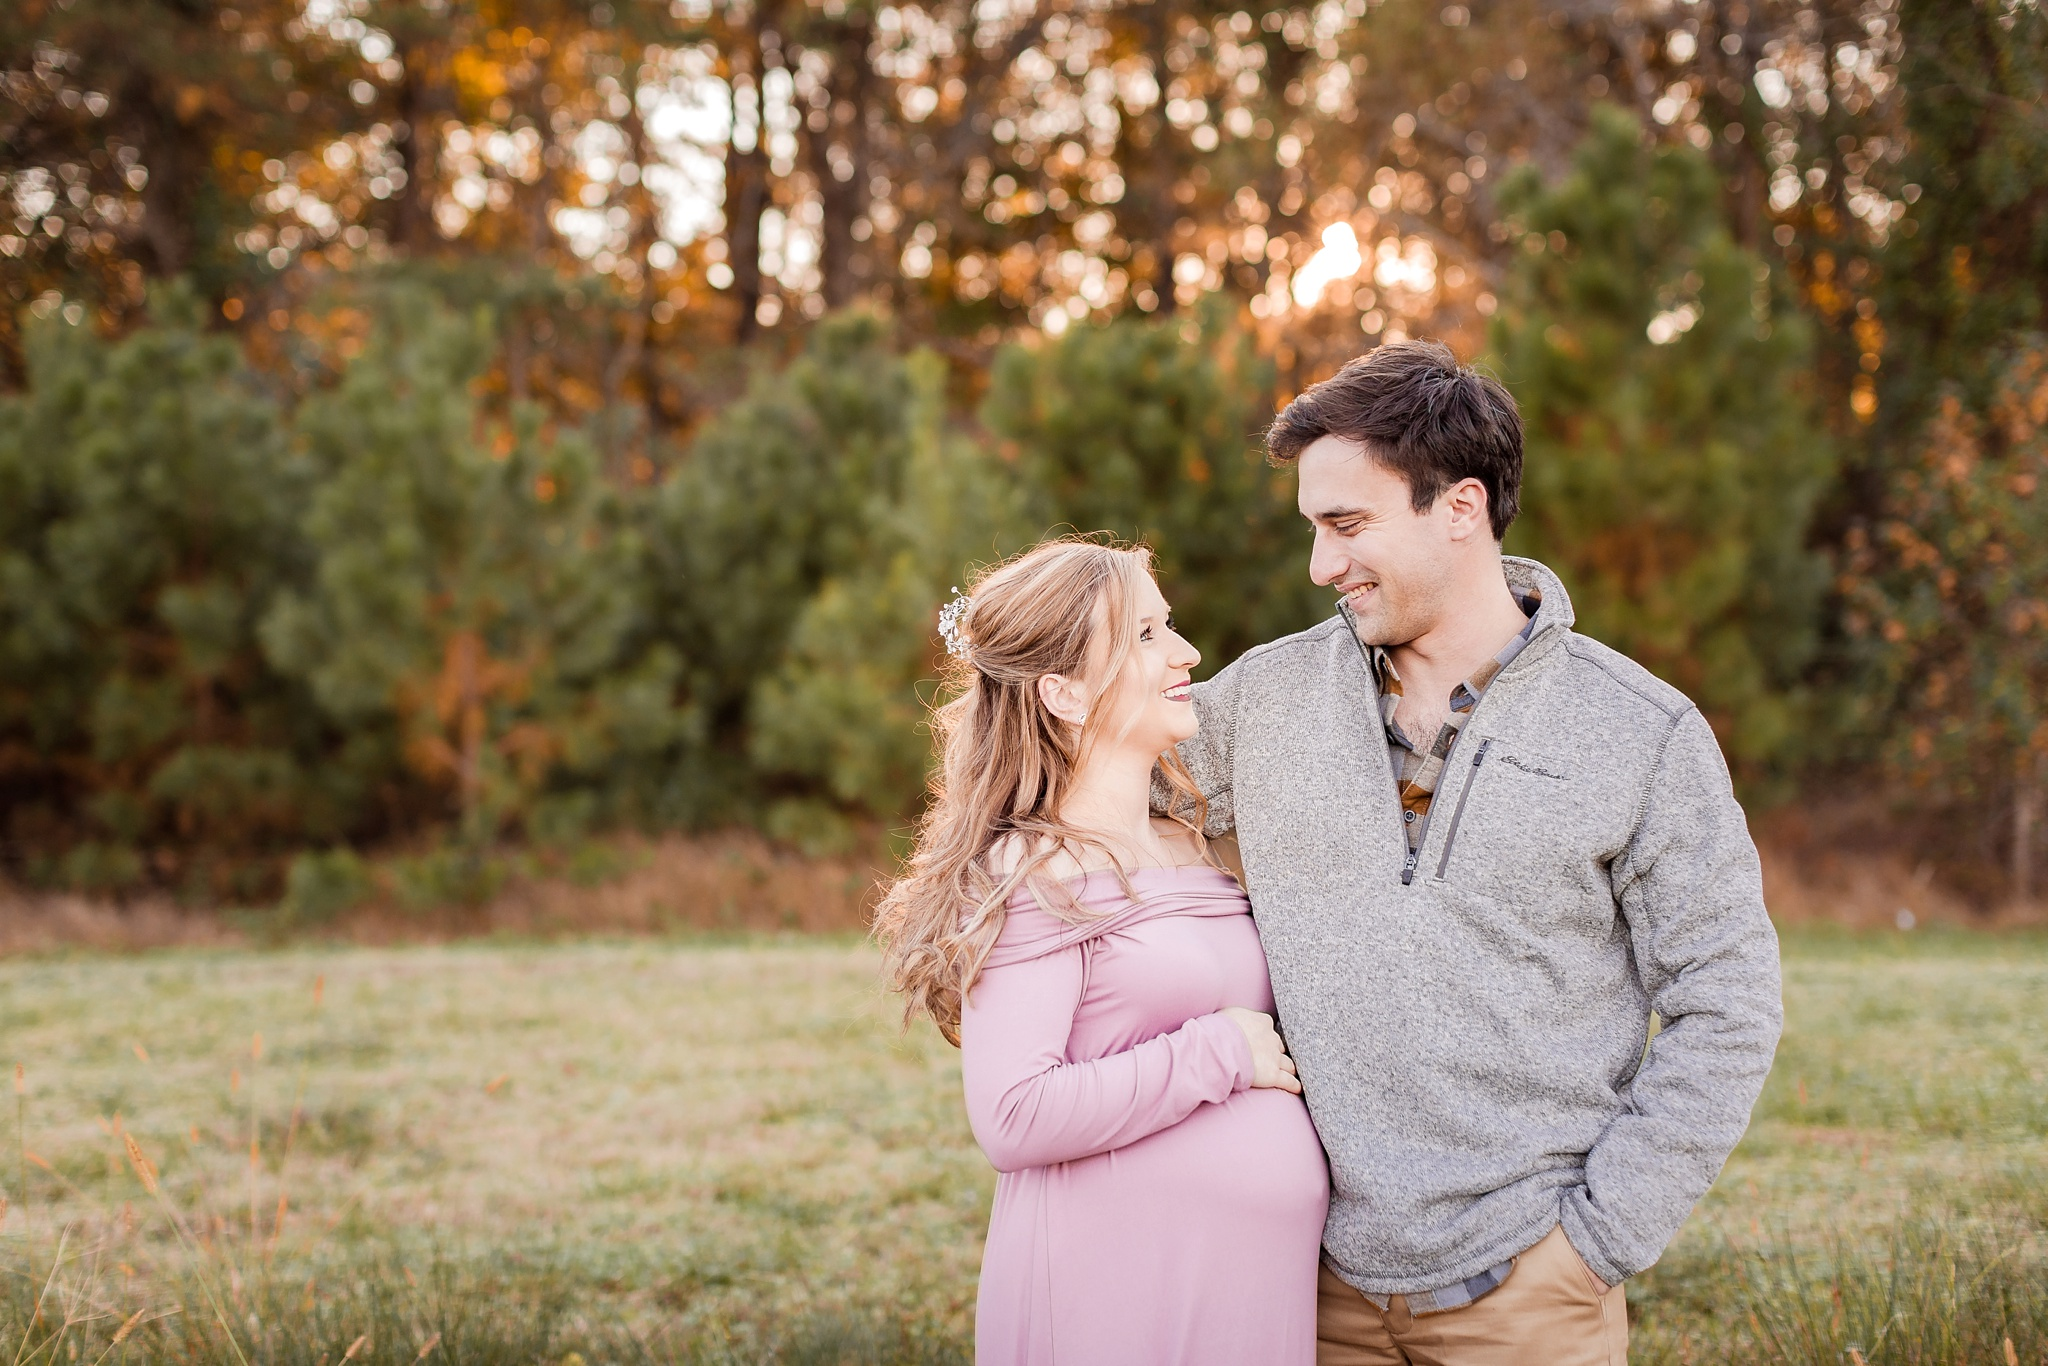 hampton-roads-maternity-photographer